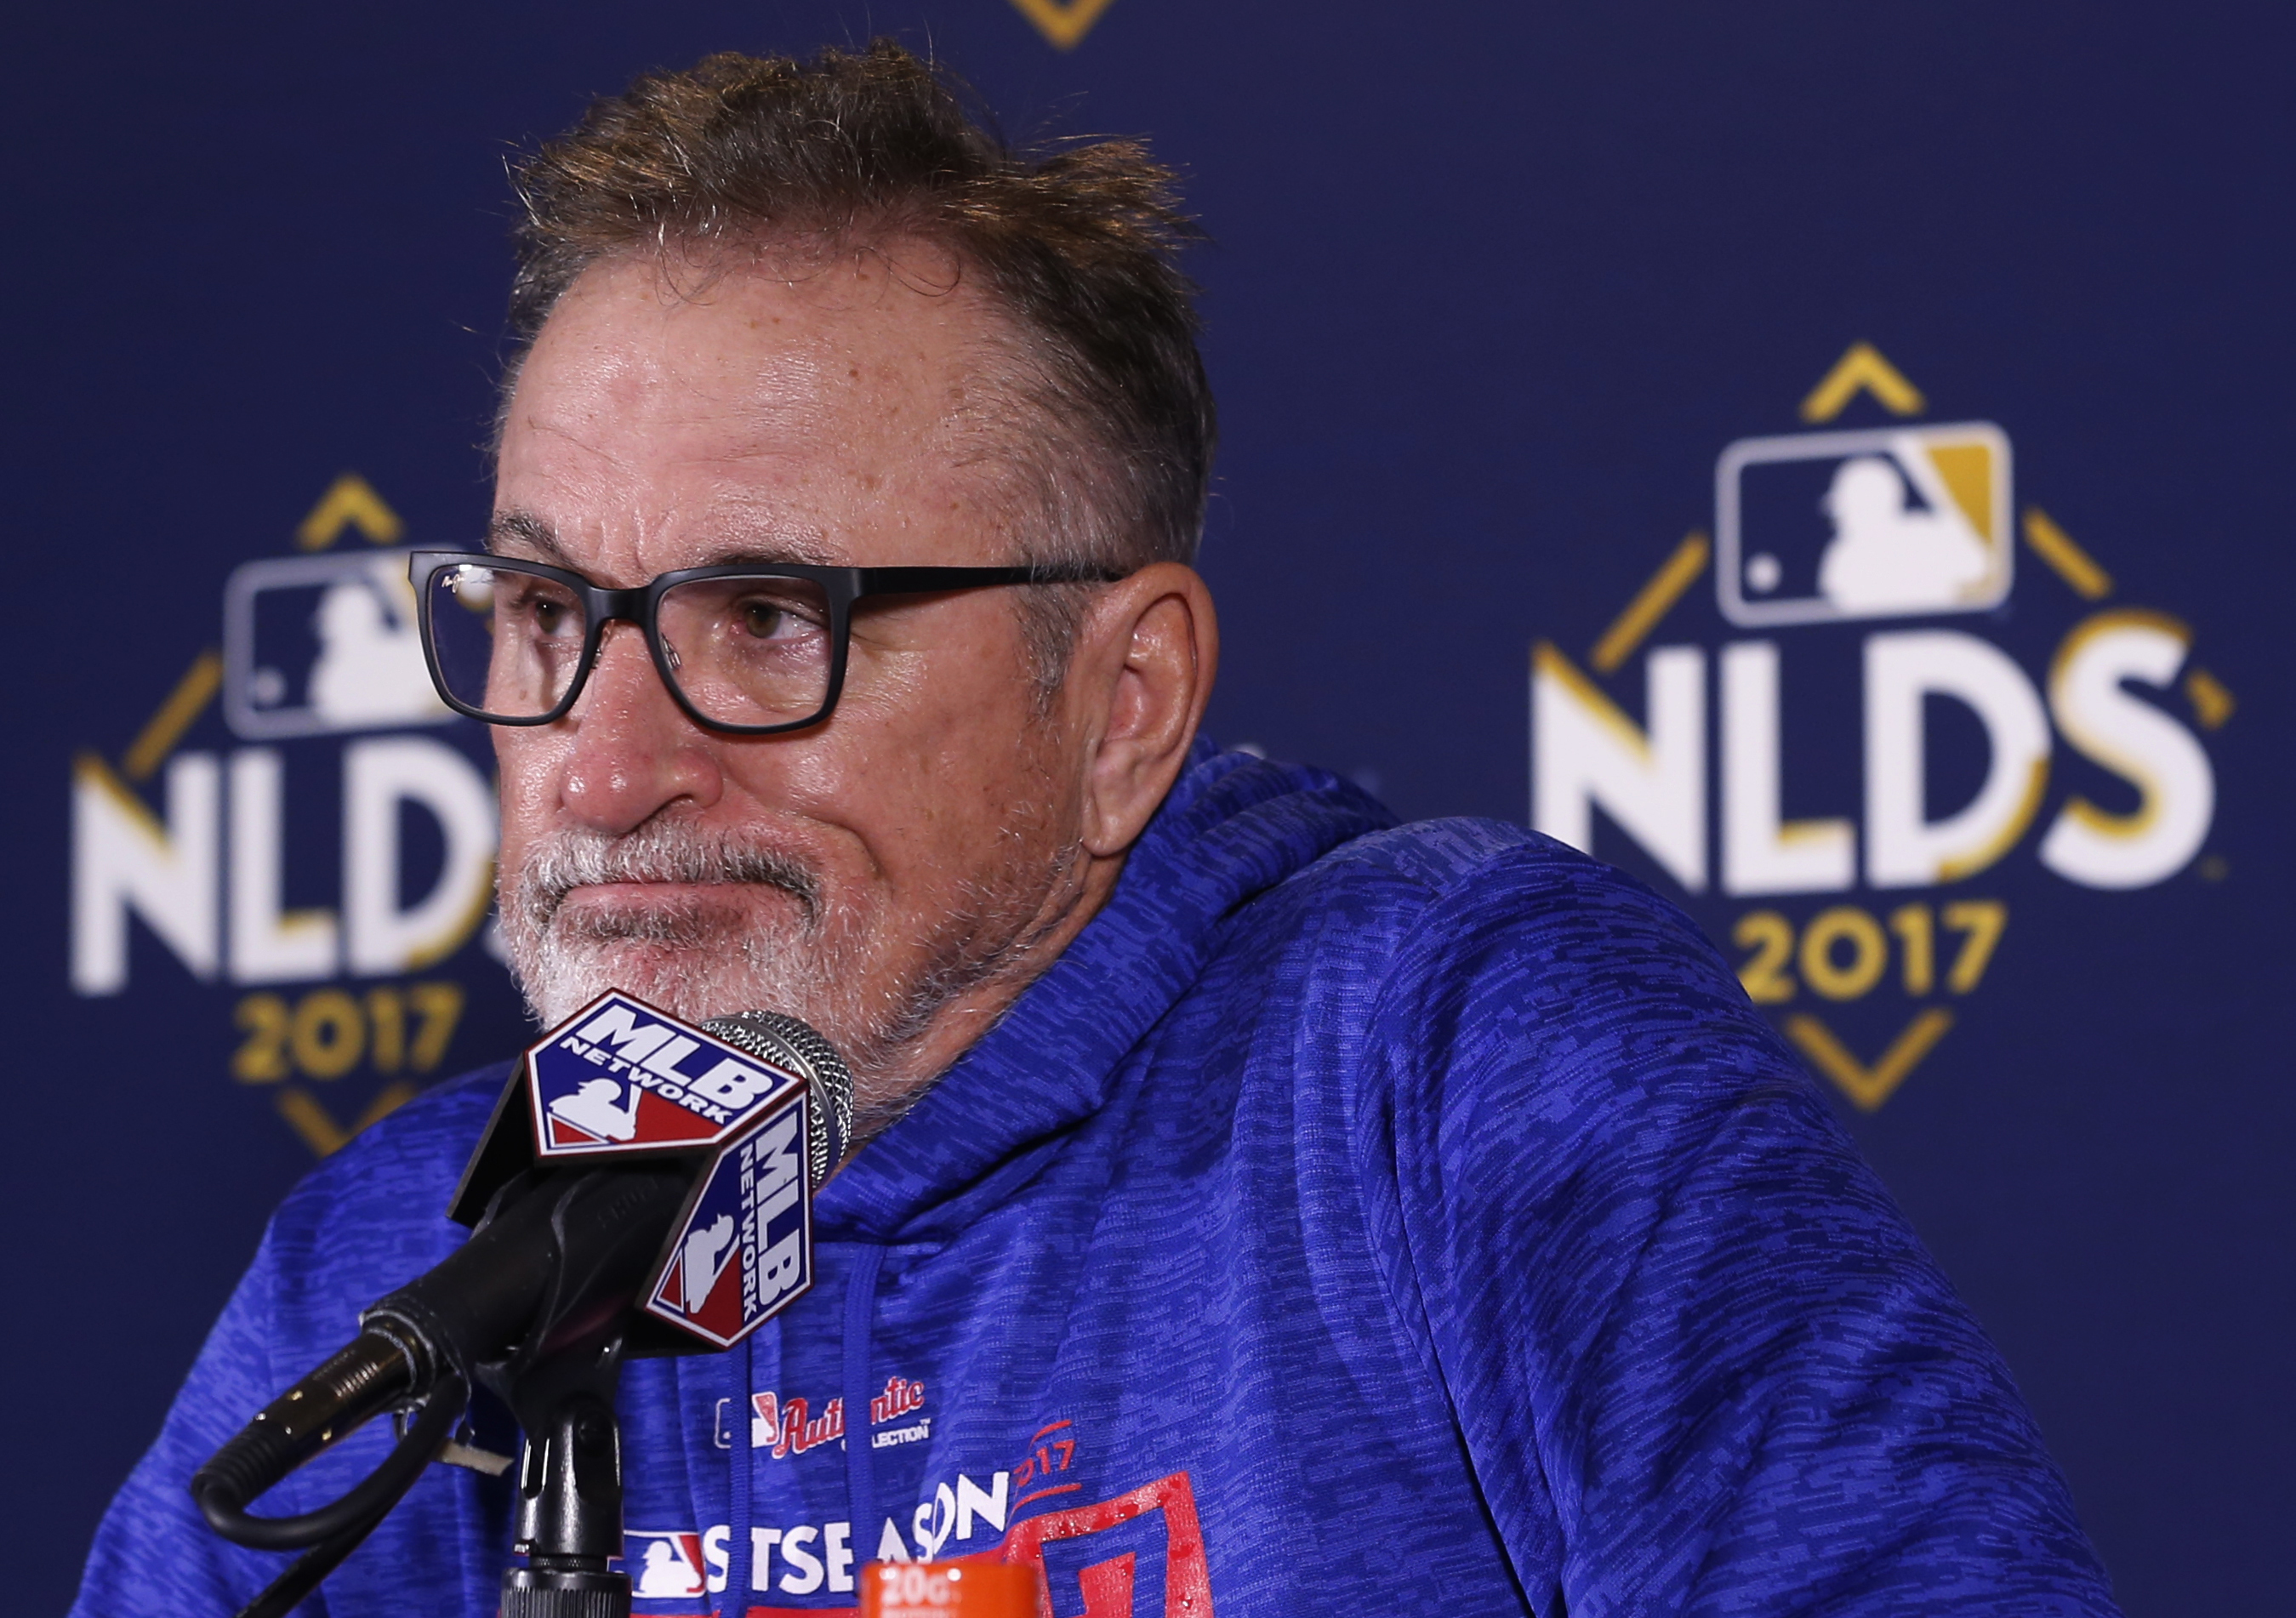 Joe Maddon's colossal bullpen mistake costs Cubs in Game 2